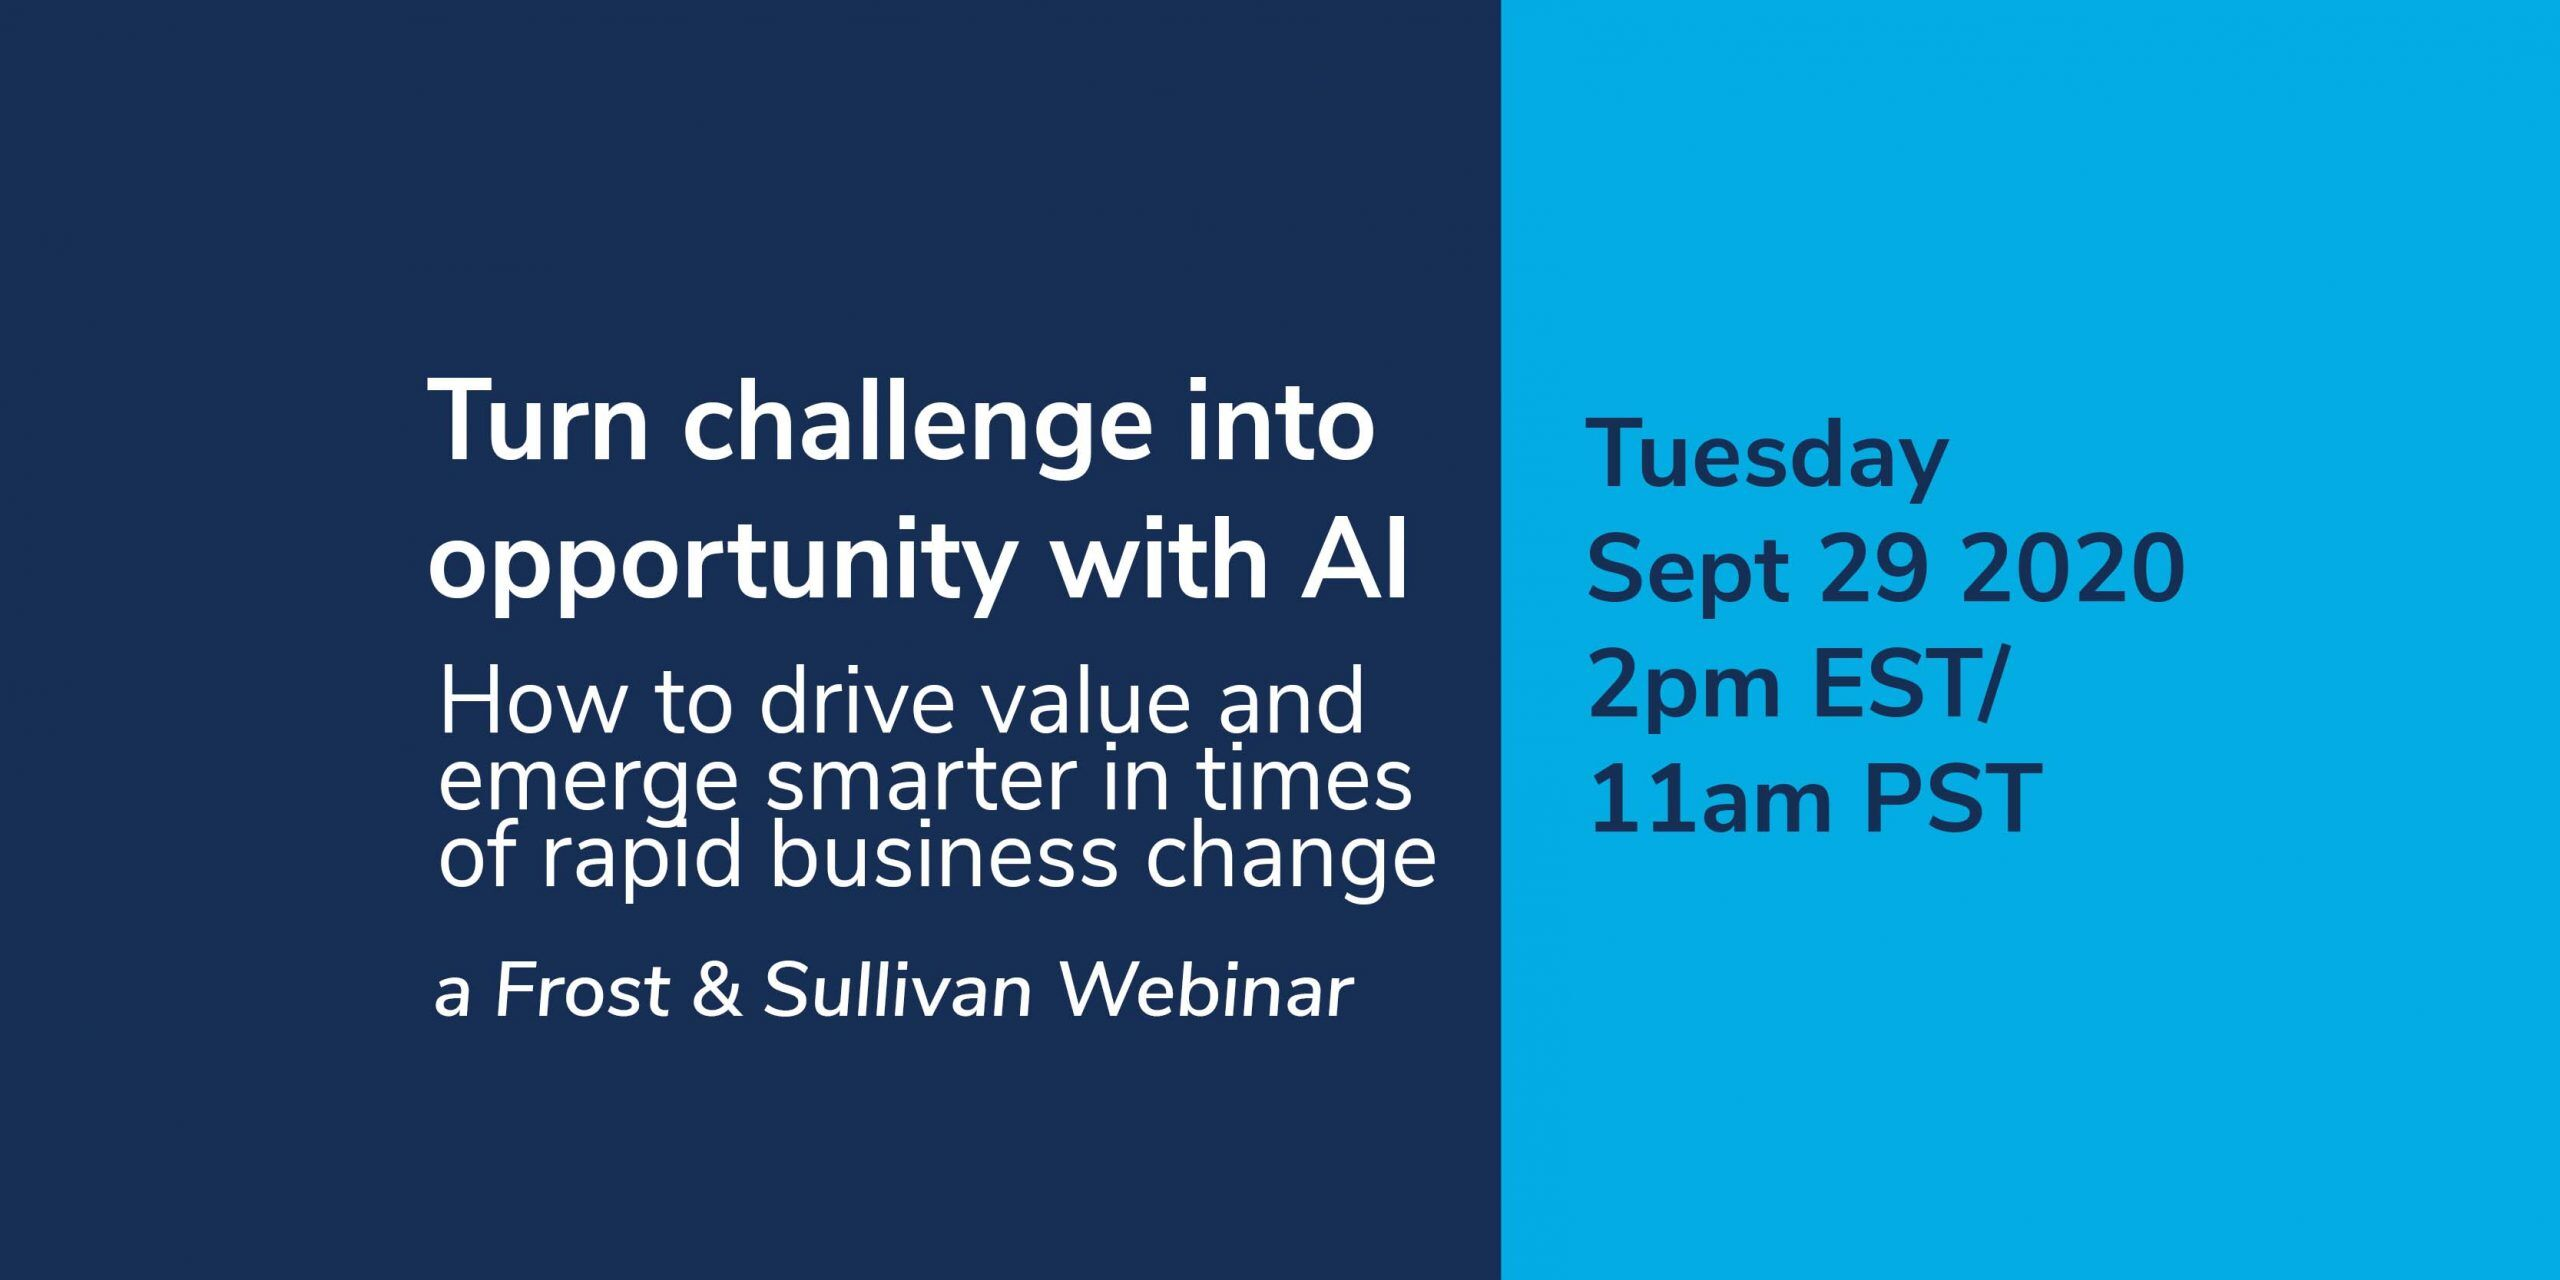 Opportunity with AI Webinar